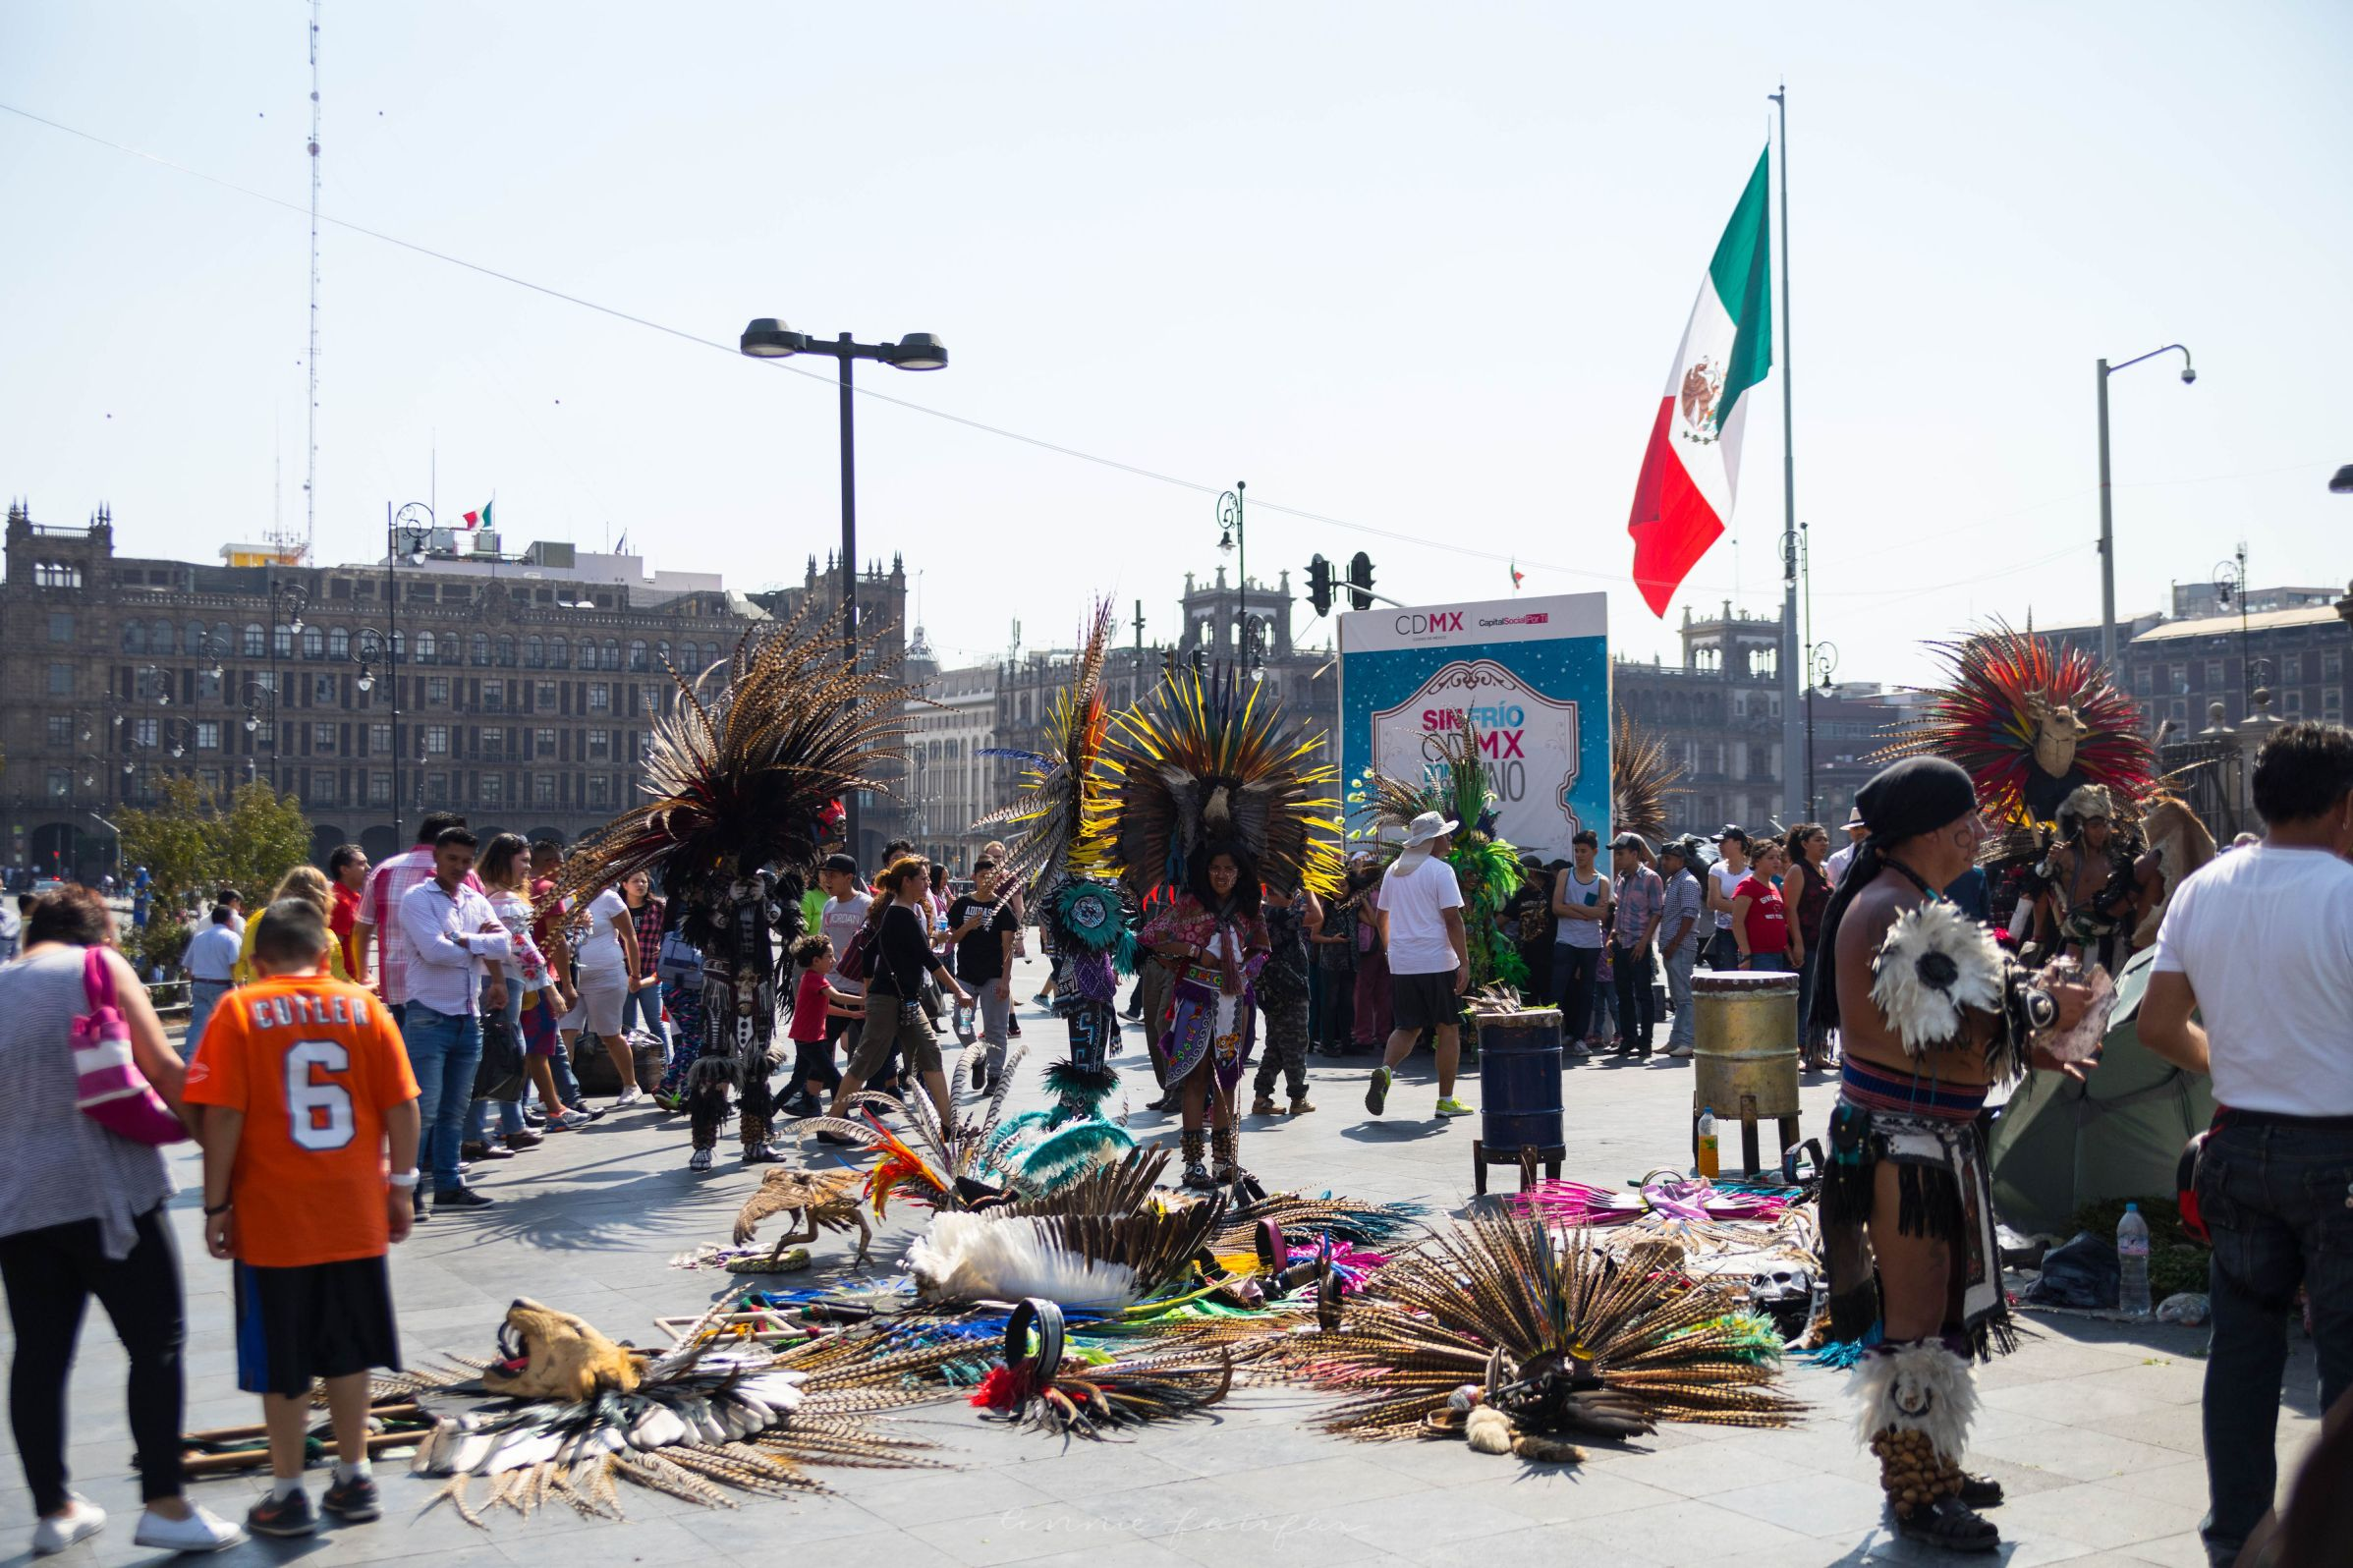 Native Dancers Outside The Metropolitan Cathedral (Catedral Metropolitana) The Complet4e Traveler's Guide to Mexico City Mexico Where to Stay What to Eat Where to Visit What to Do Places to Avoid How to Stay Safe in Mexico City